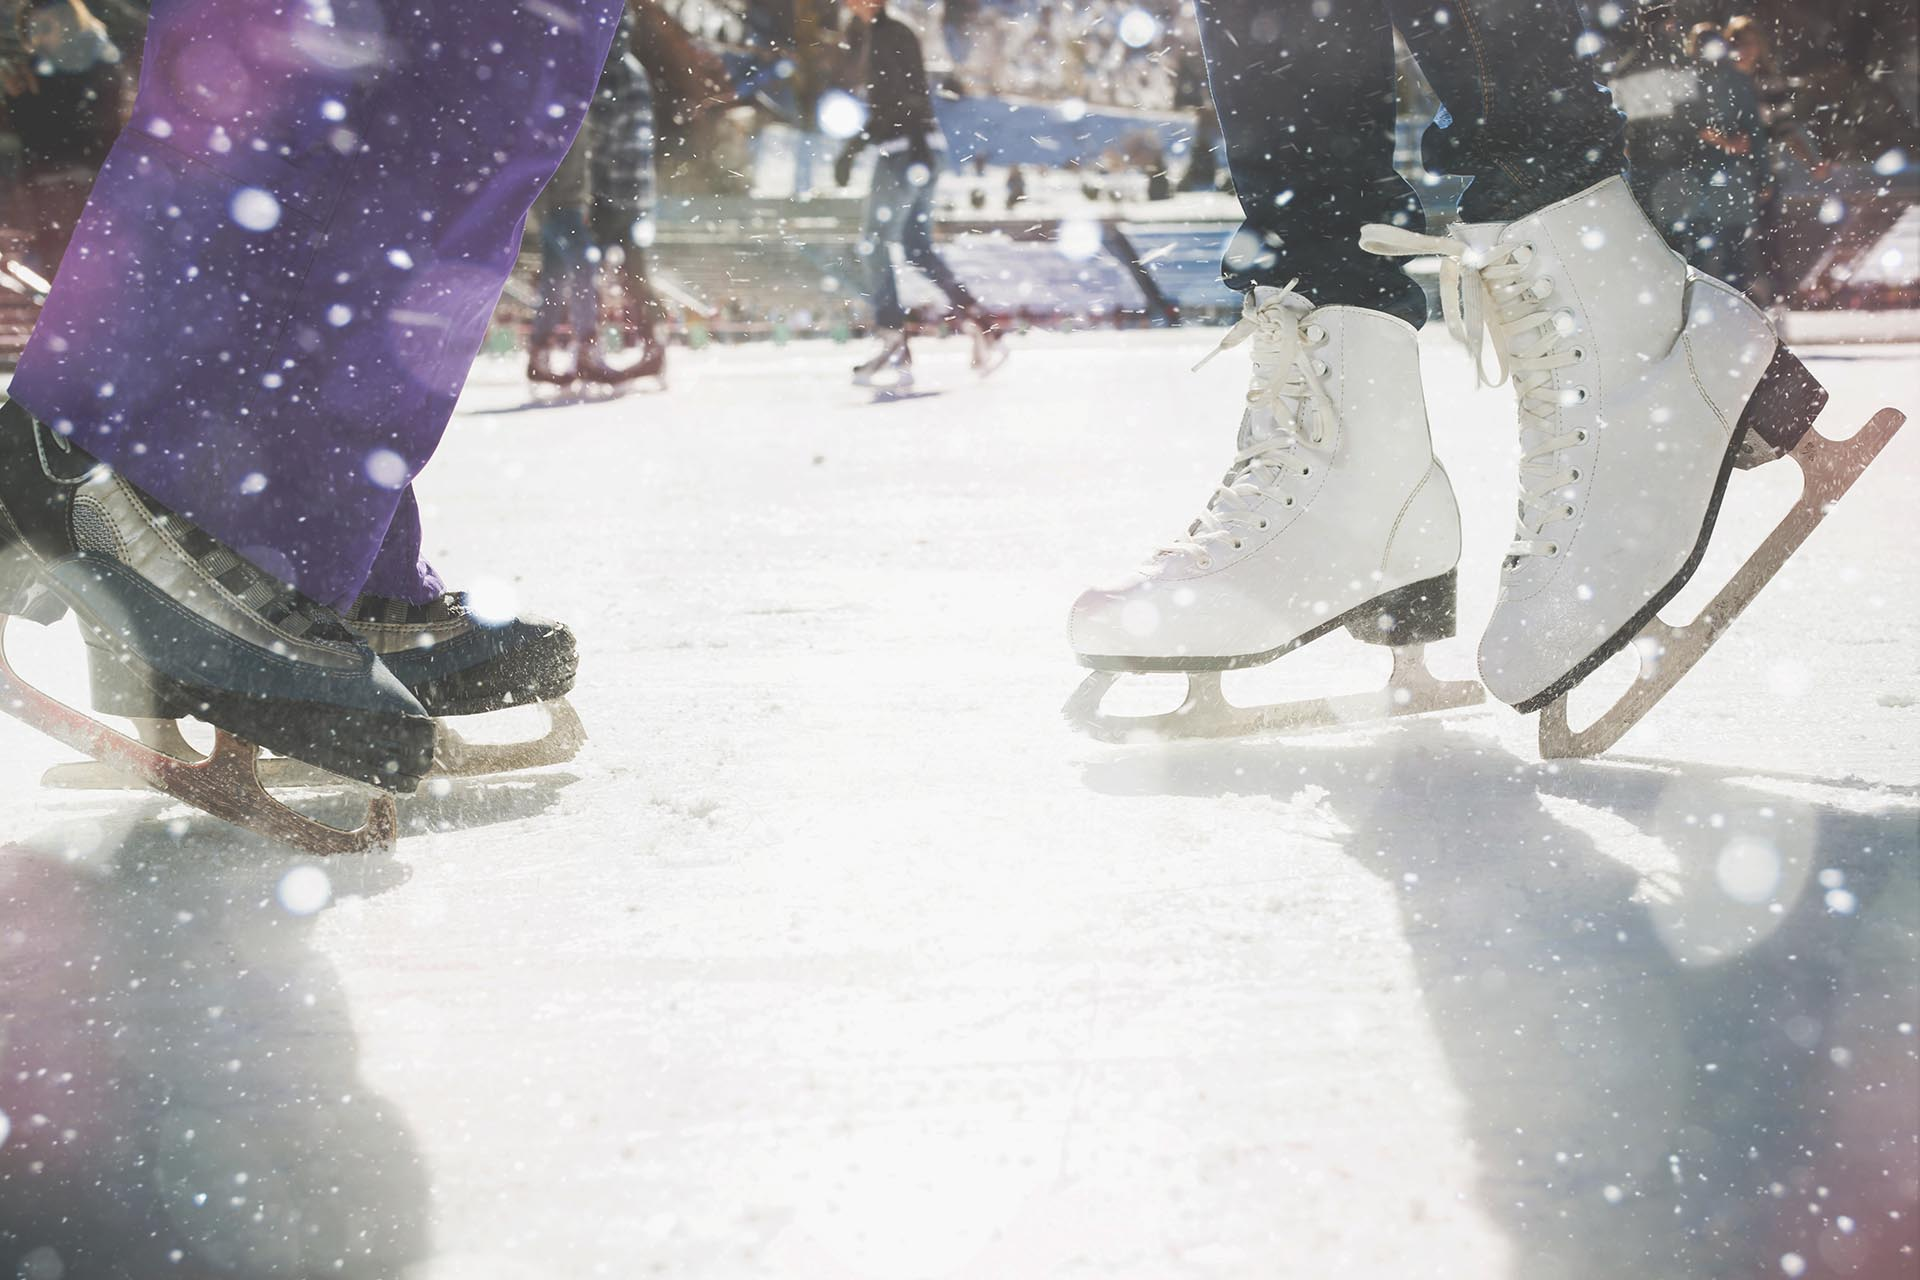 Winter Sports and Signing Waivers Require Caution